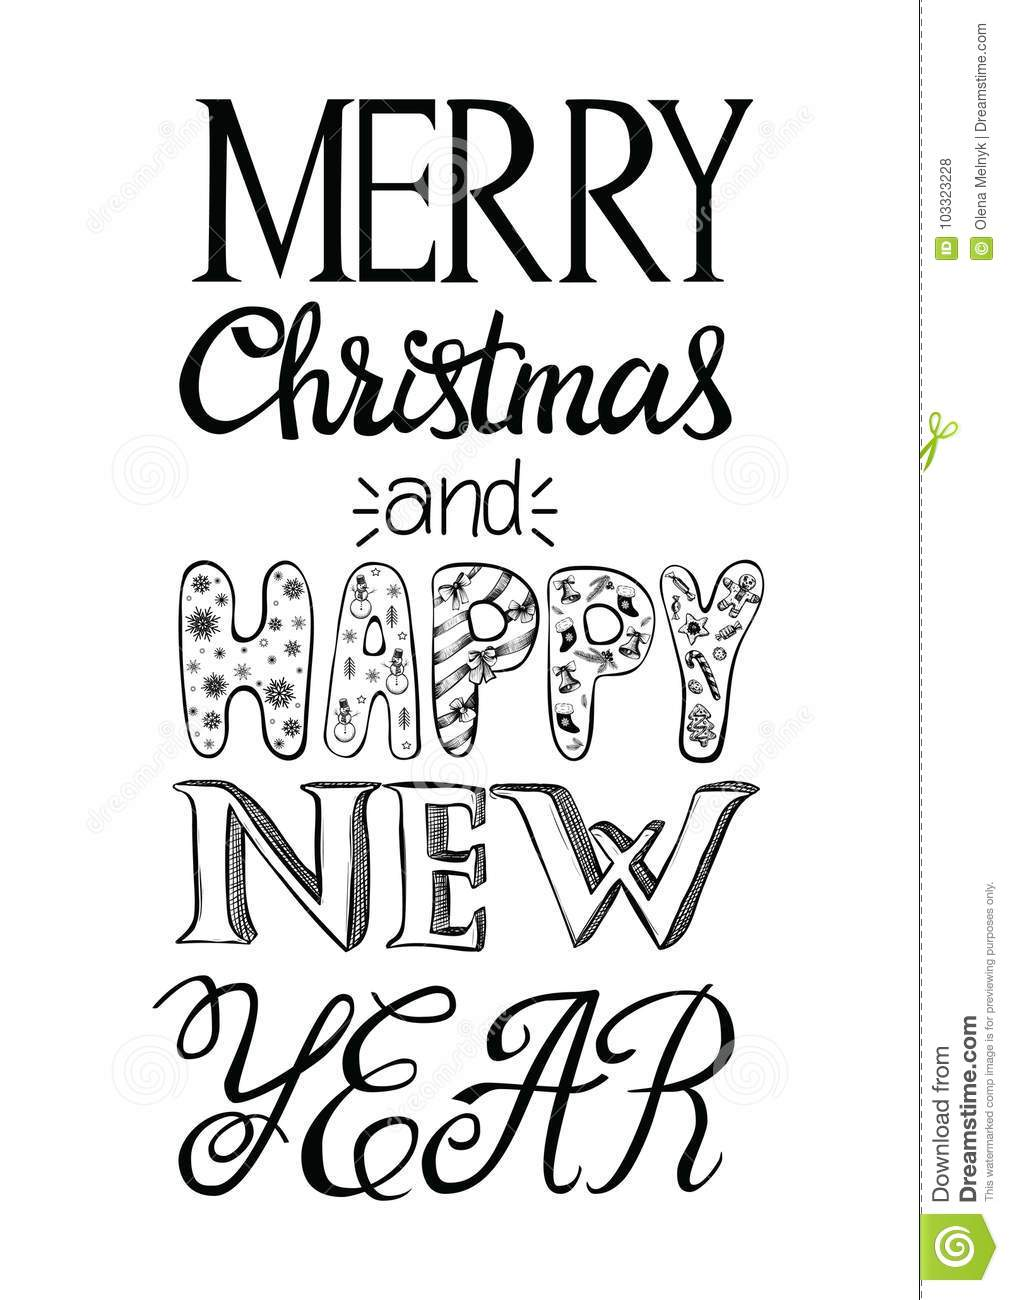 Merry christmas and happy new year greeting card vector merry christmas and happy new year greeting card christmas hand drawn postcard different types and patterns on letters vector illustration m4hsunfo